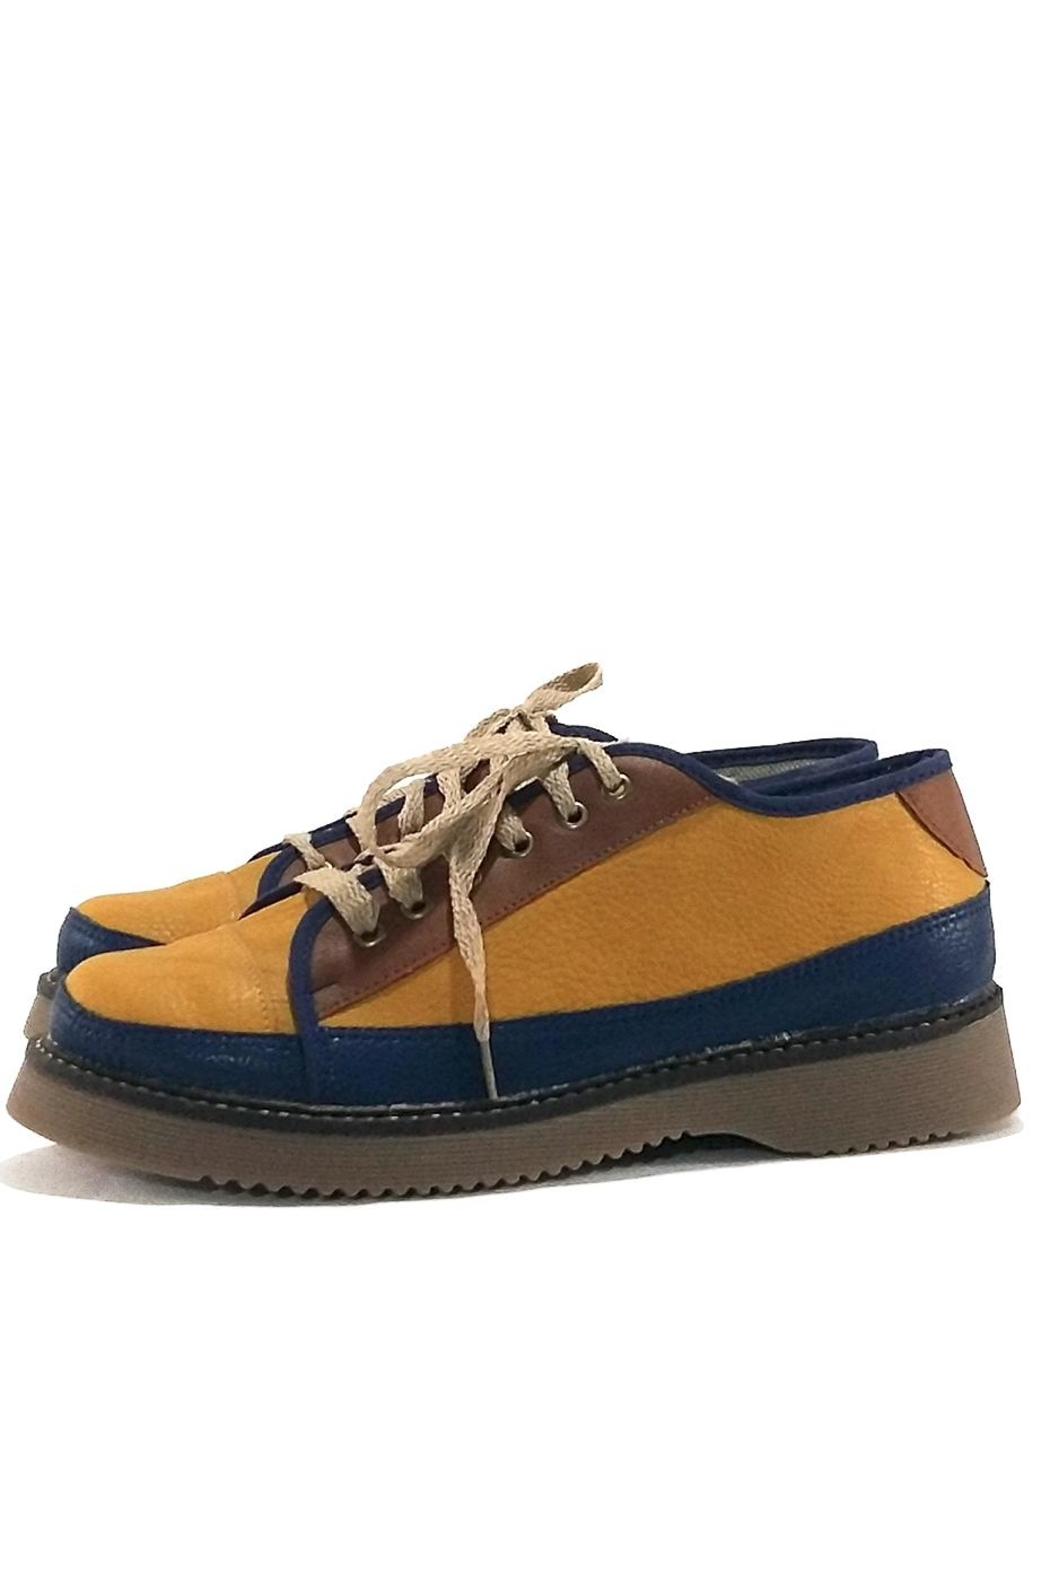 MIYE COLLAZZO Yellow Attitude Sneakers - Main Image